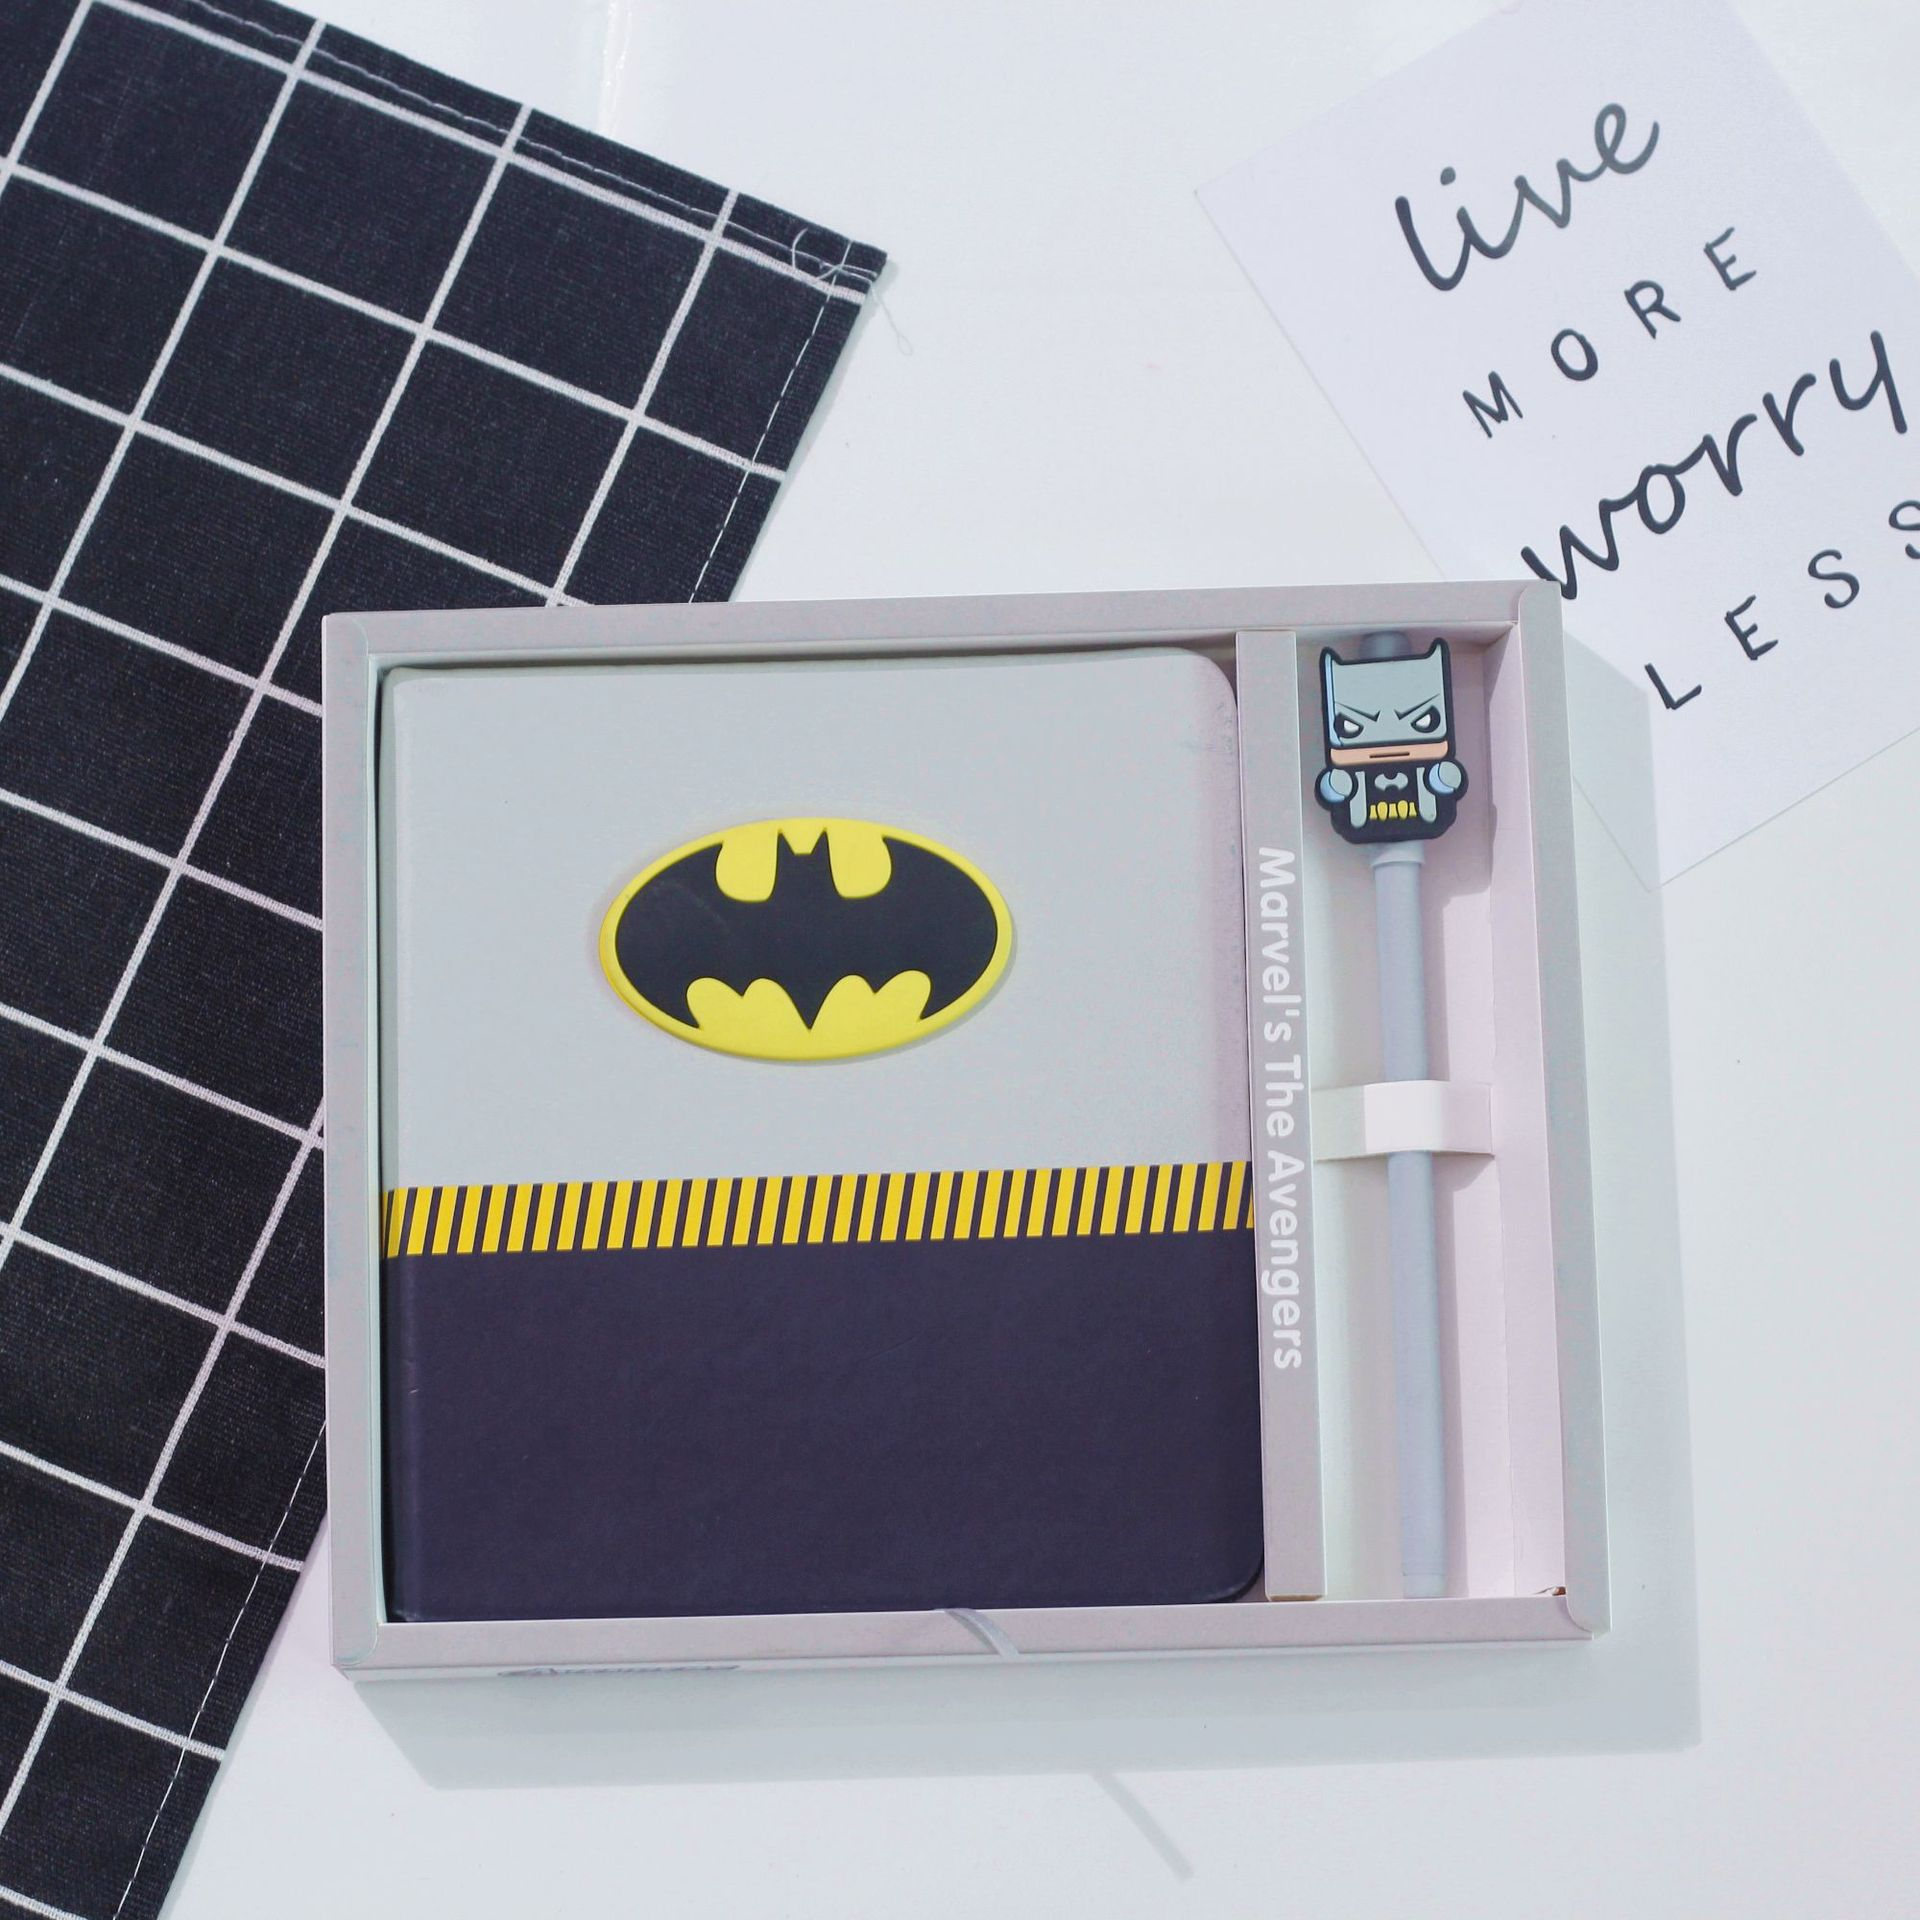 Image 4 - Cartoon Super Hero Series Notebook + Pen, Creative Boys School Gifts Planner Diary Set with Pens-in Notebooks from Office & School Supplies